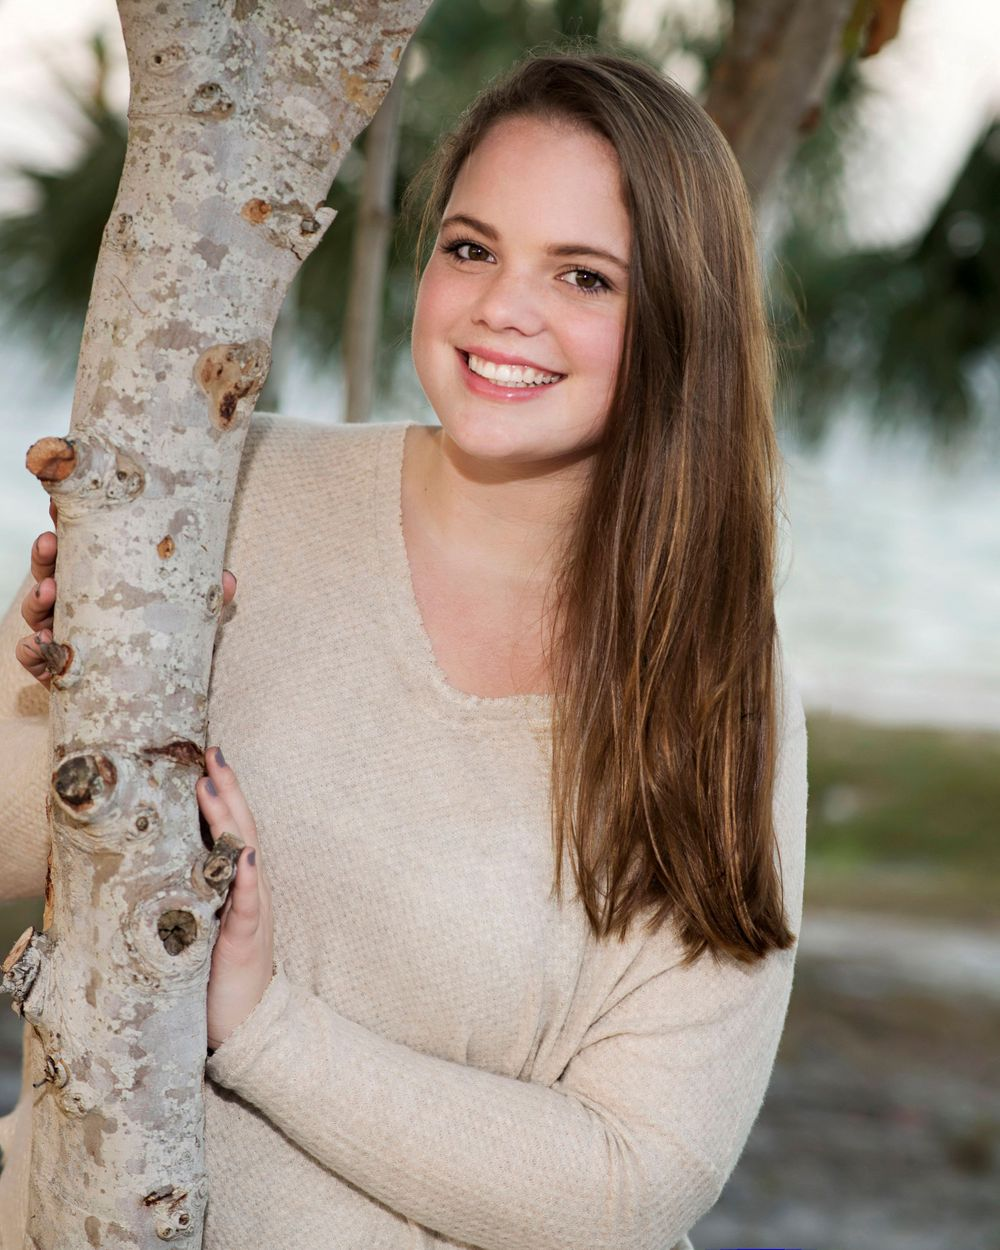 Female Senior photo Tarpon Springs, Fl by Kathleen Hall Photography